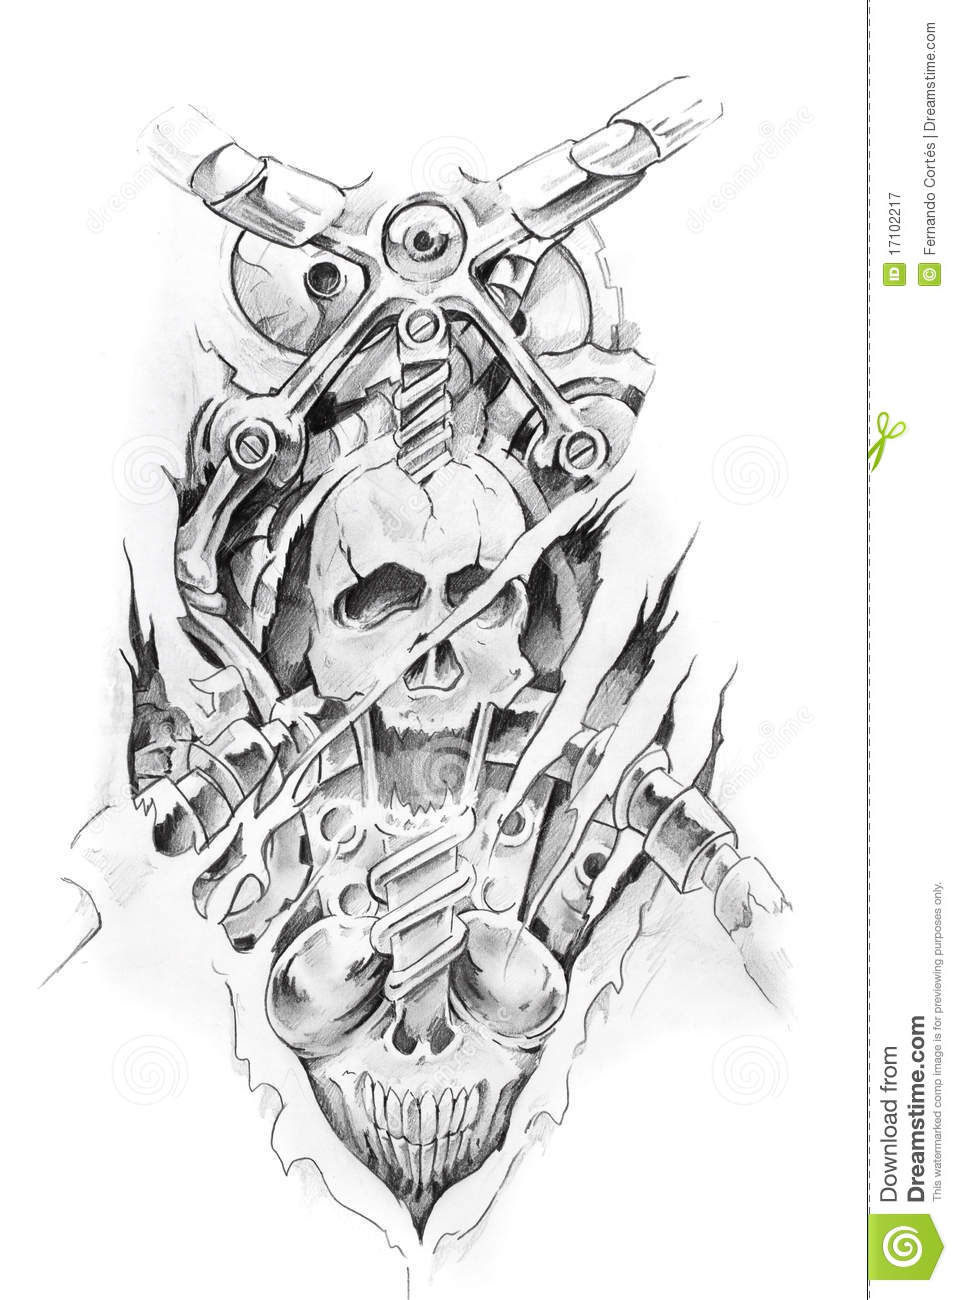 Tattoo Art Sketch Of A Machine Royalty Free Stock